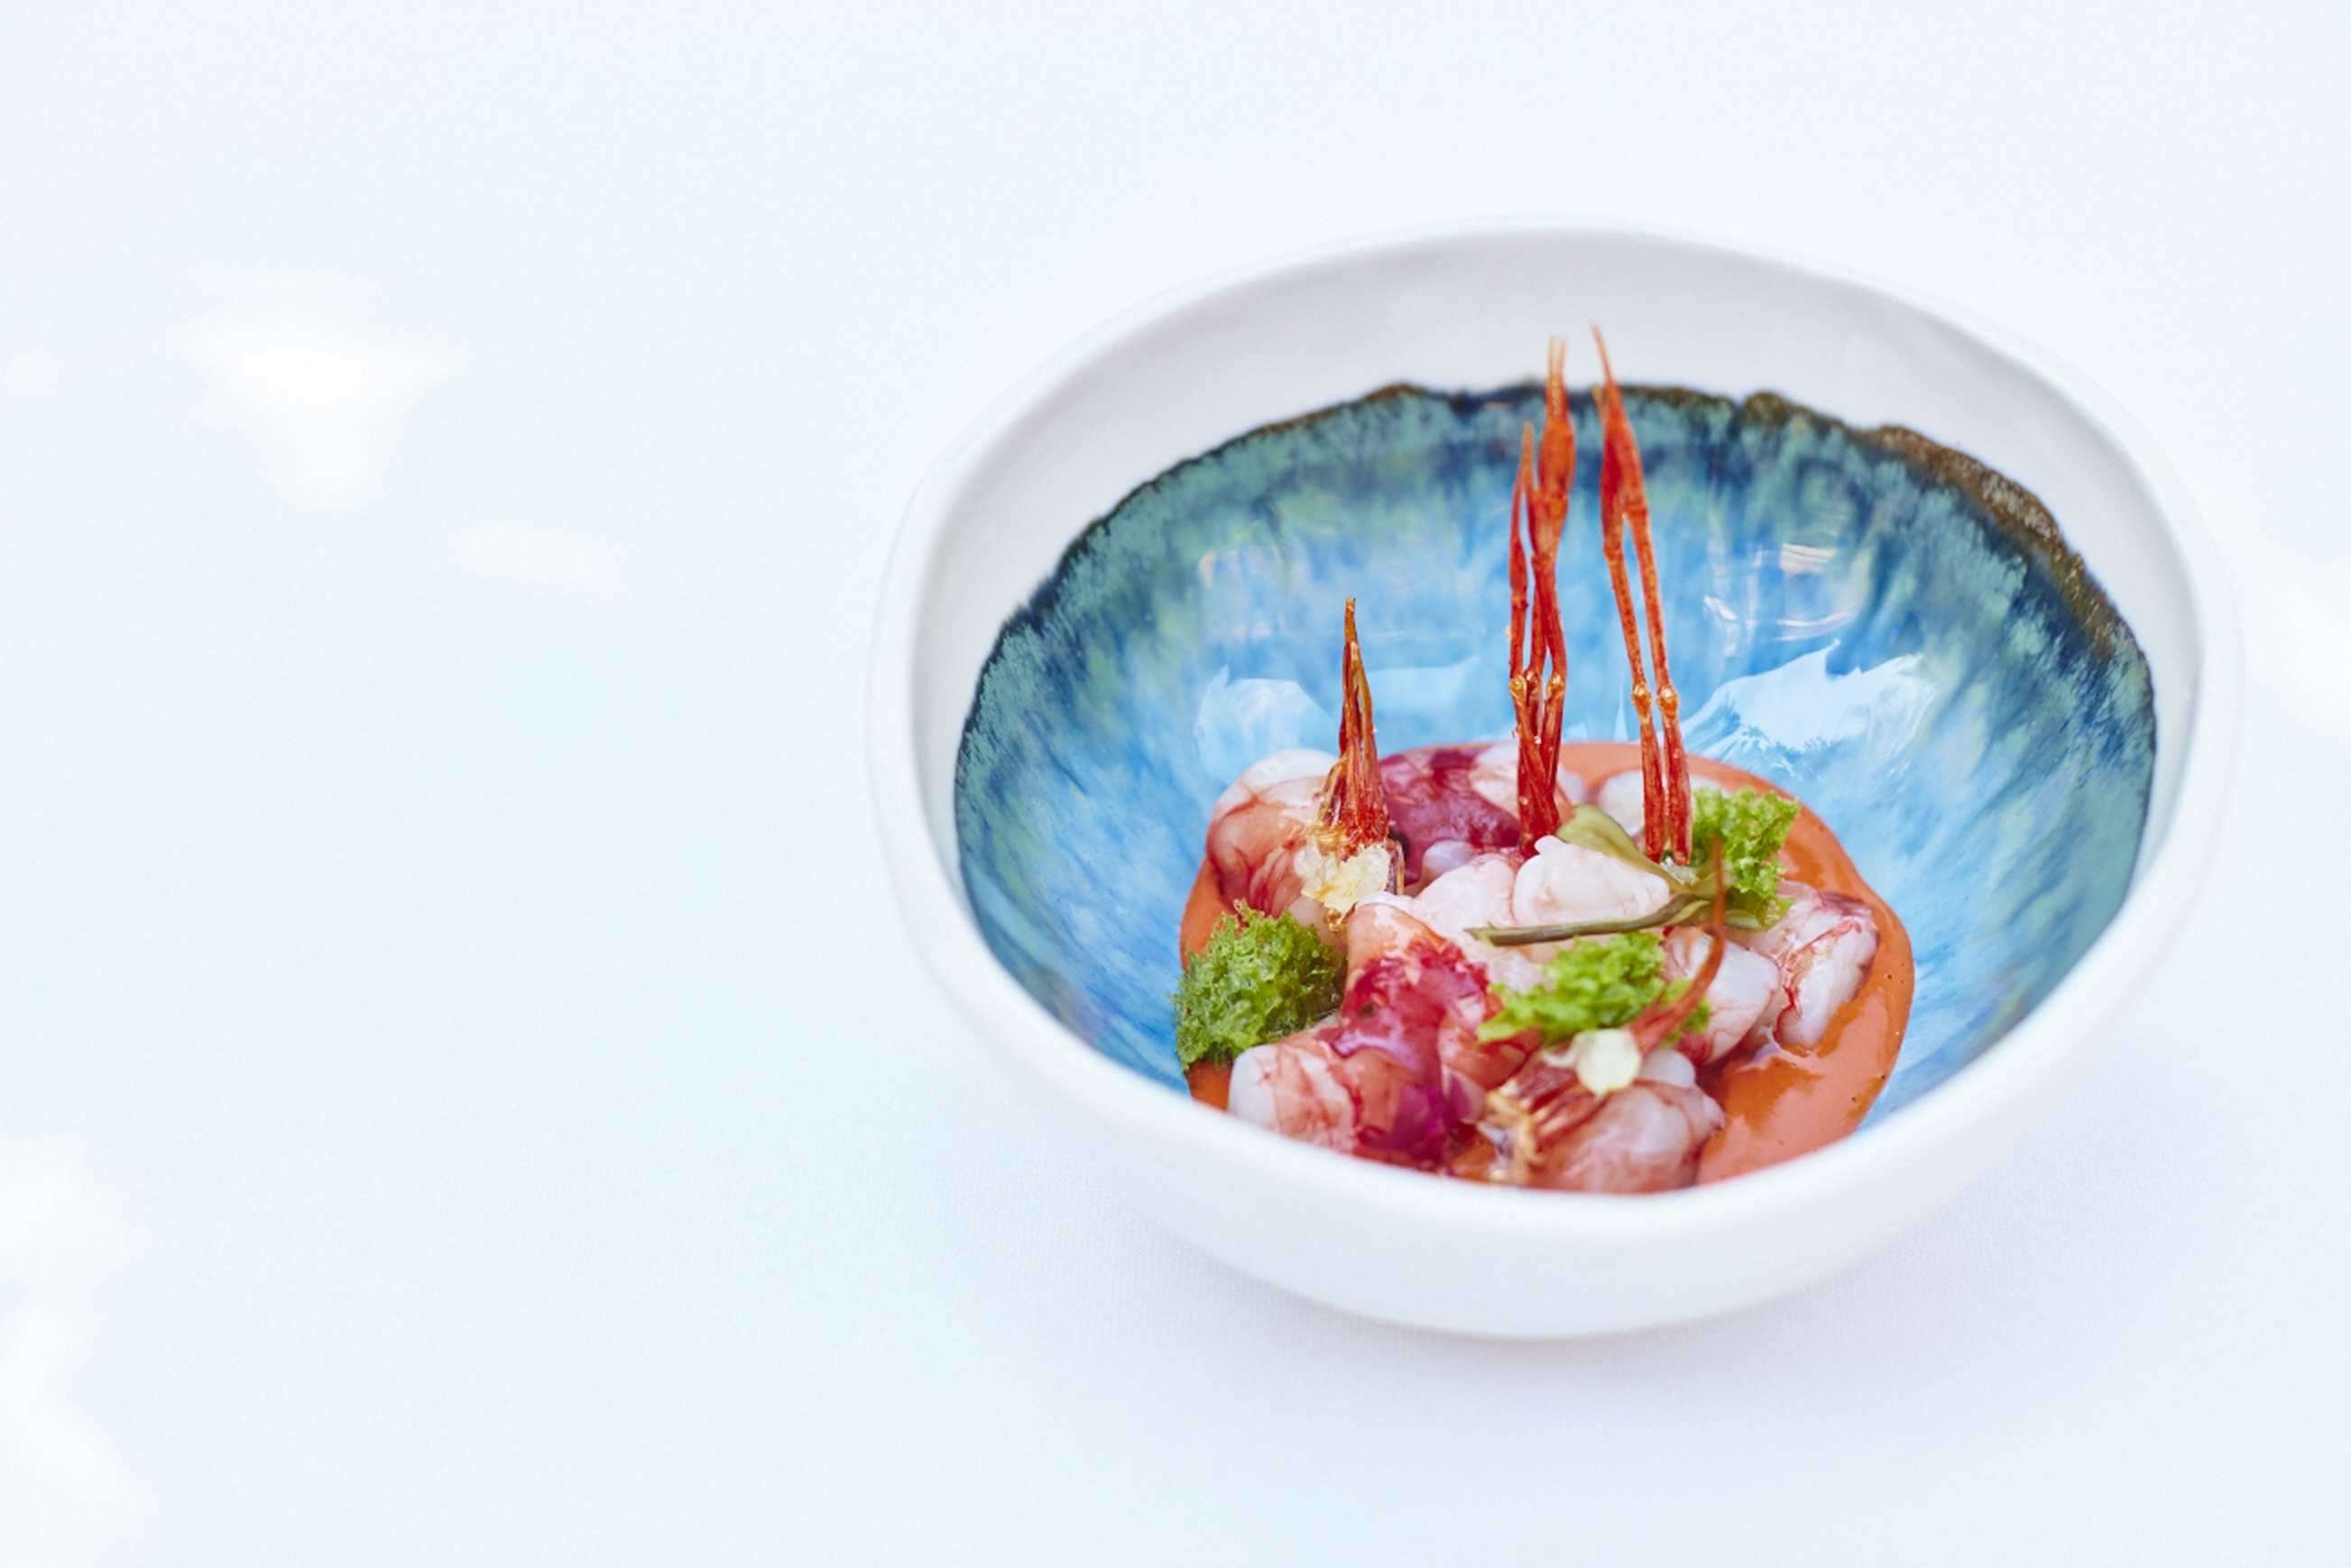 Vinegar marinated prawn and katsuobushi with crispy prawn legs, seaweed velouté and phytoplàncton-001